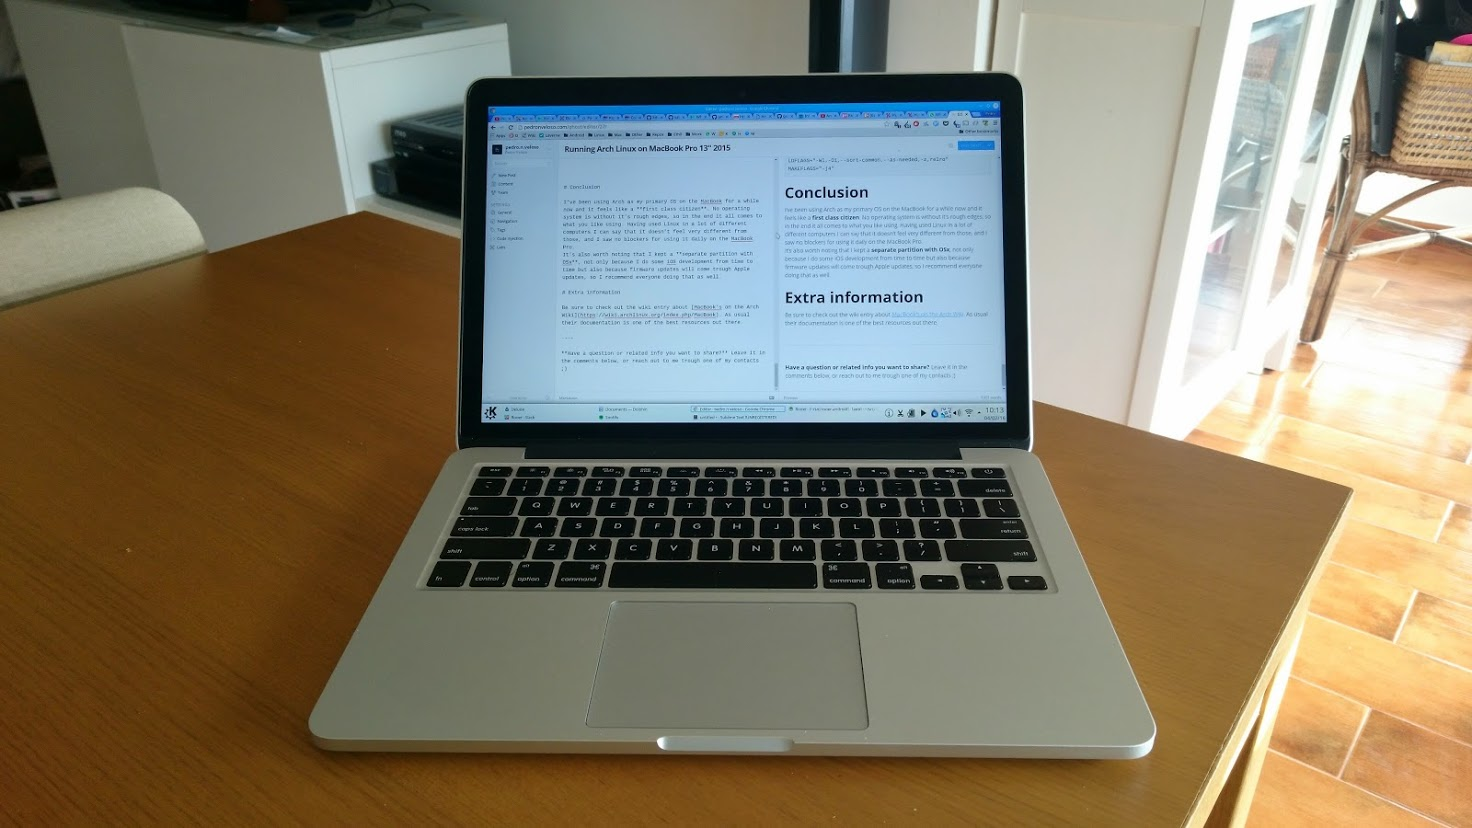 MacBook Pro 2015 Running Arch Linux